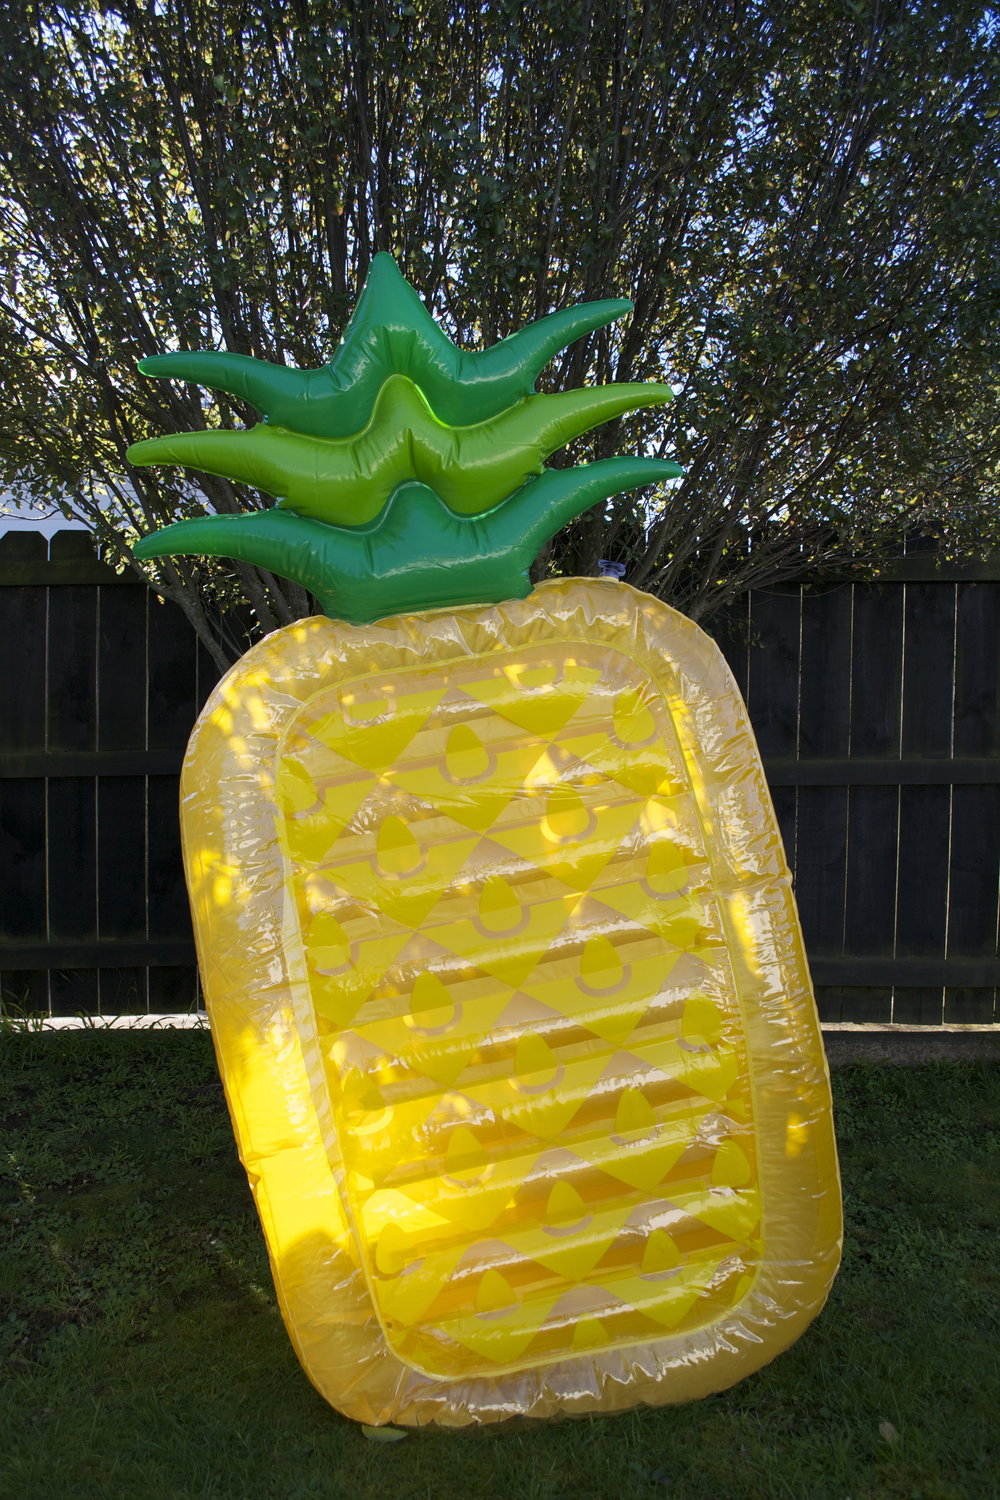 pineapple pool float x1 $8